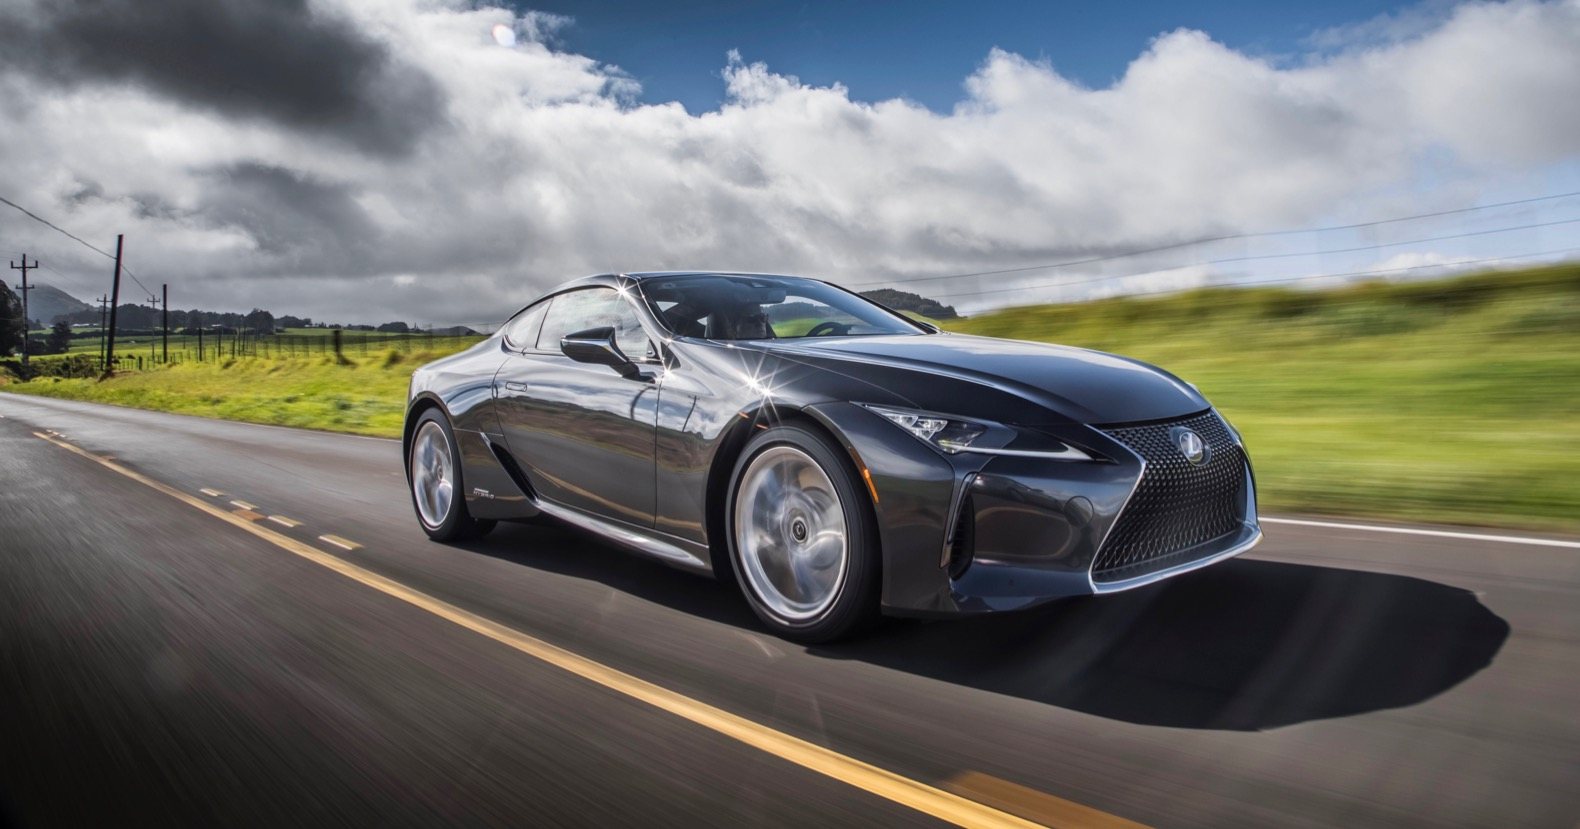 2020 lexus lc 500h review: a sporty and sexy hybrid   the